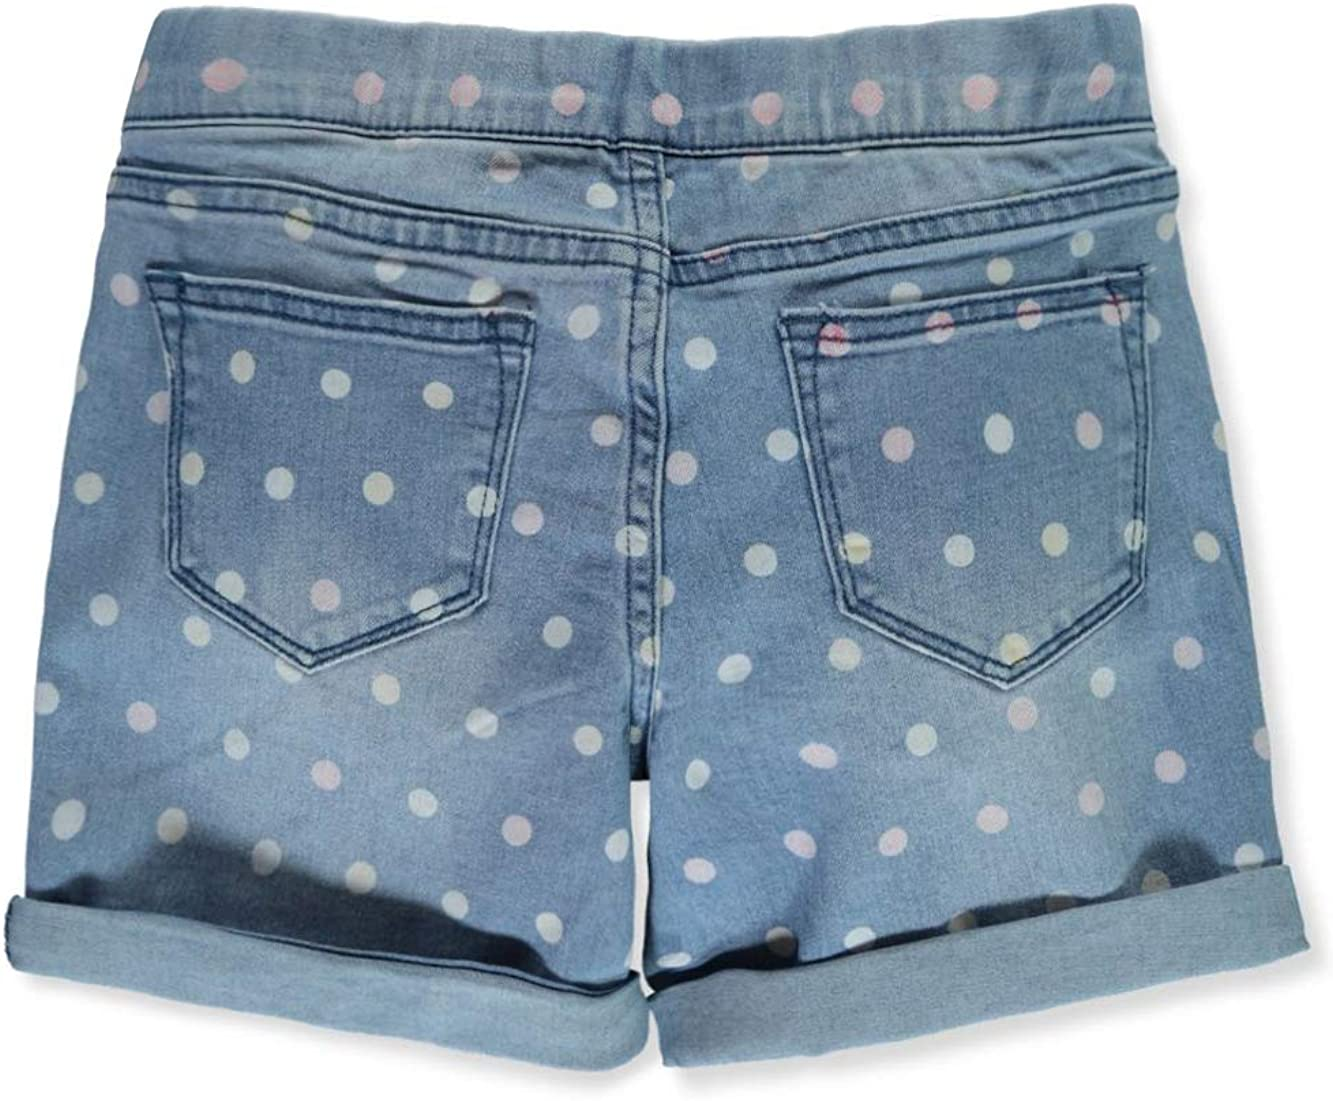 Studio V Girls Polka Dot Denim Shorts